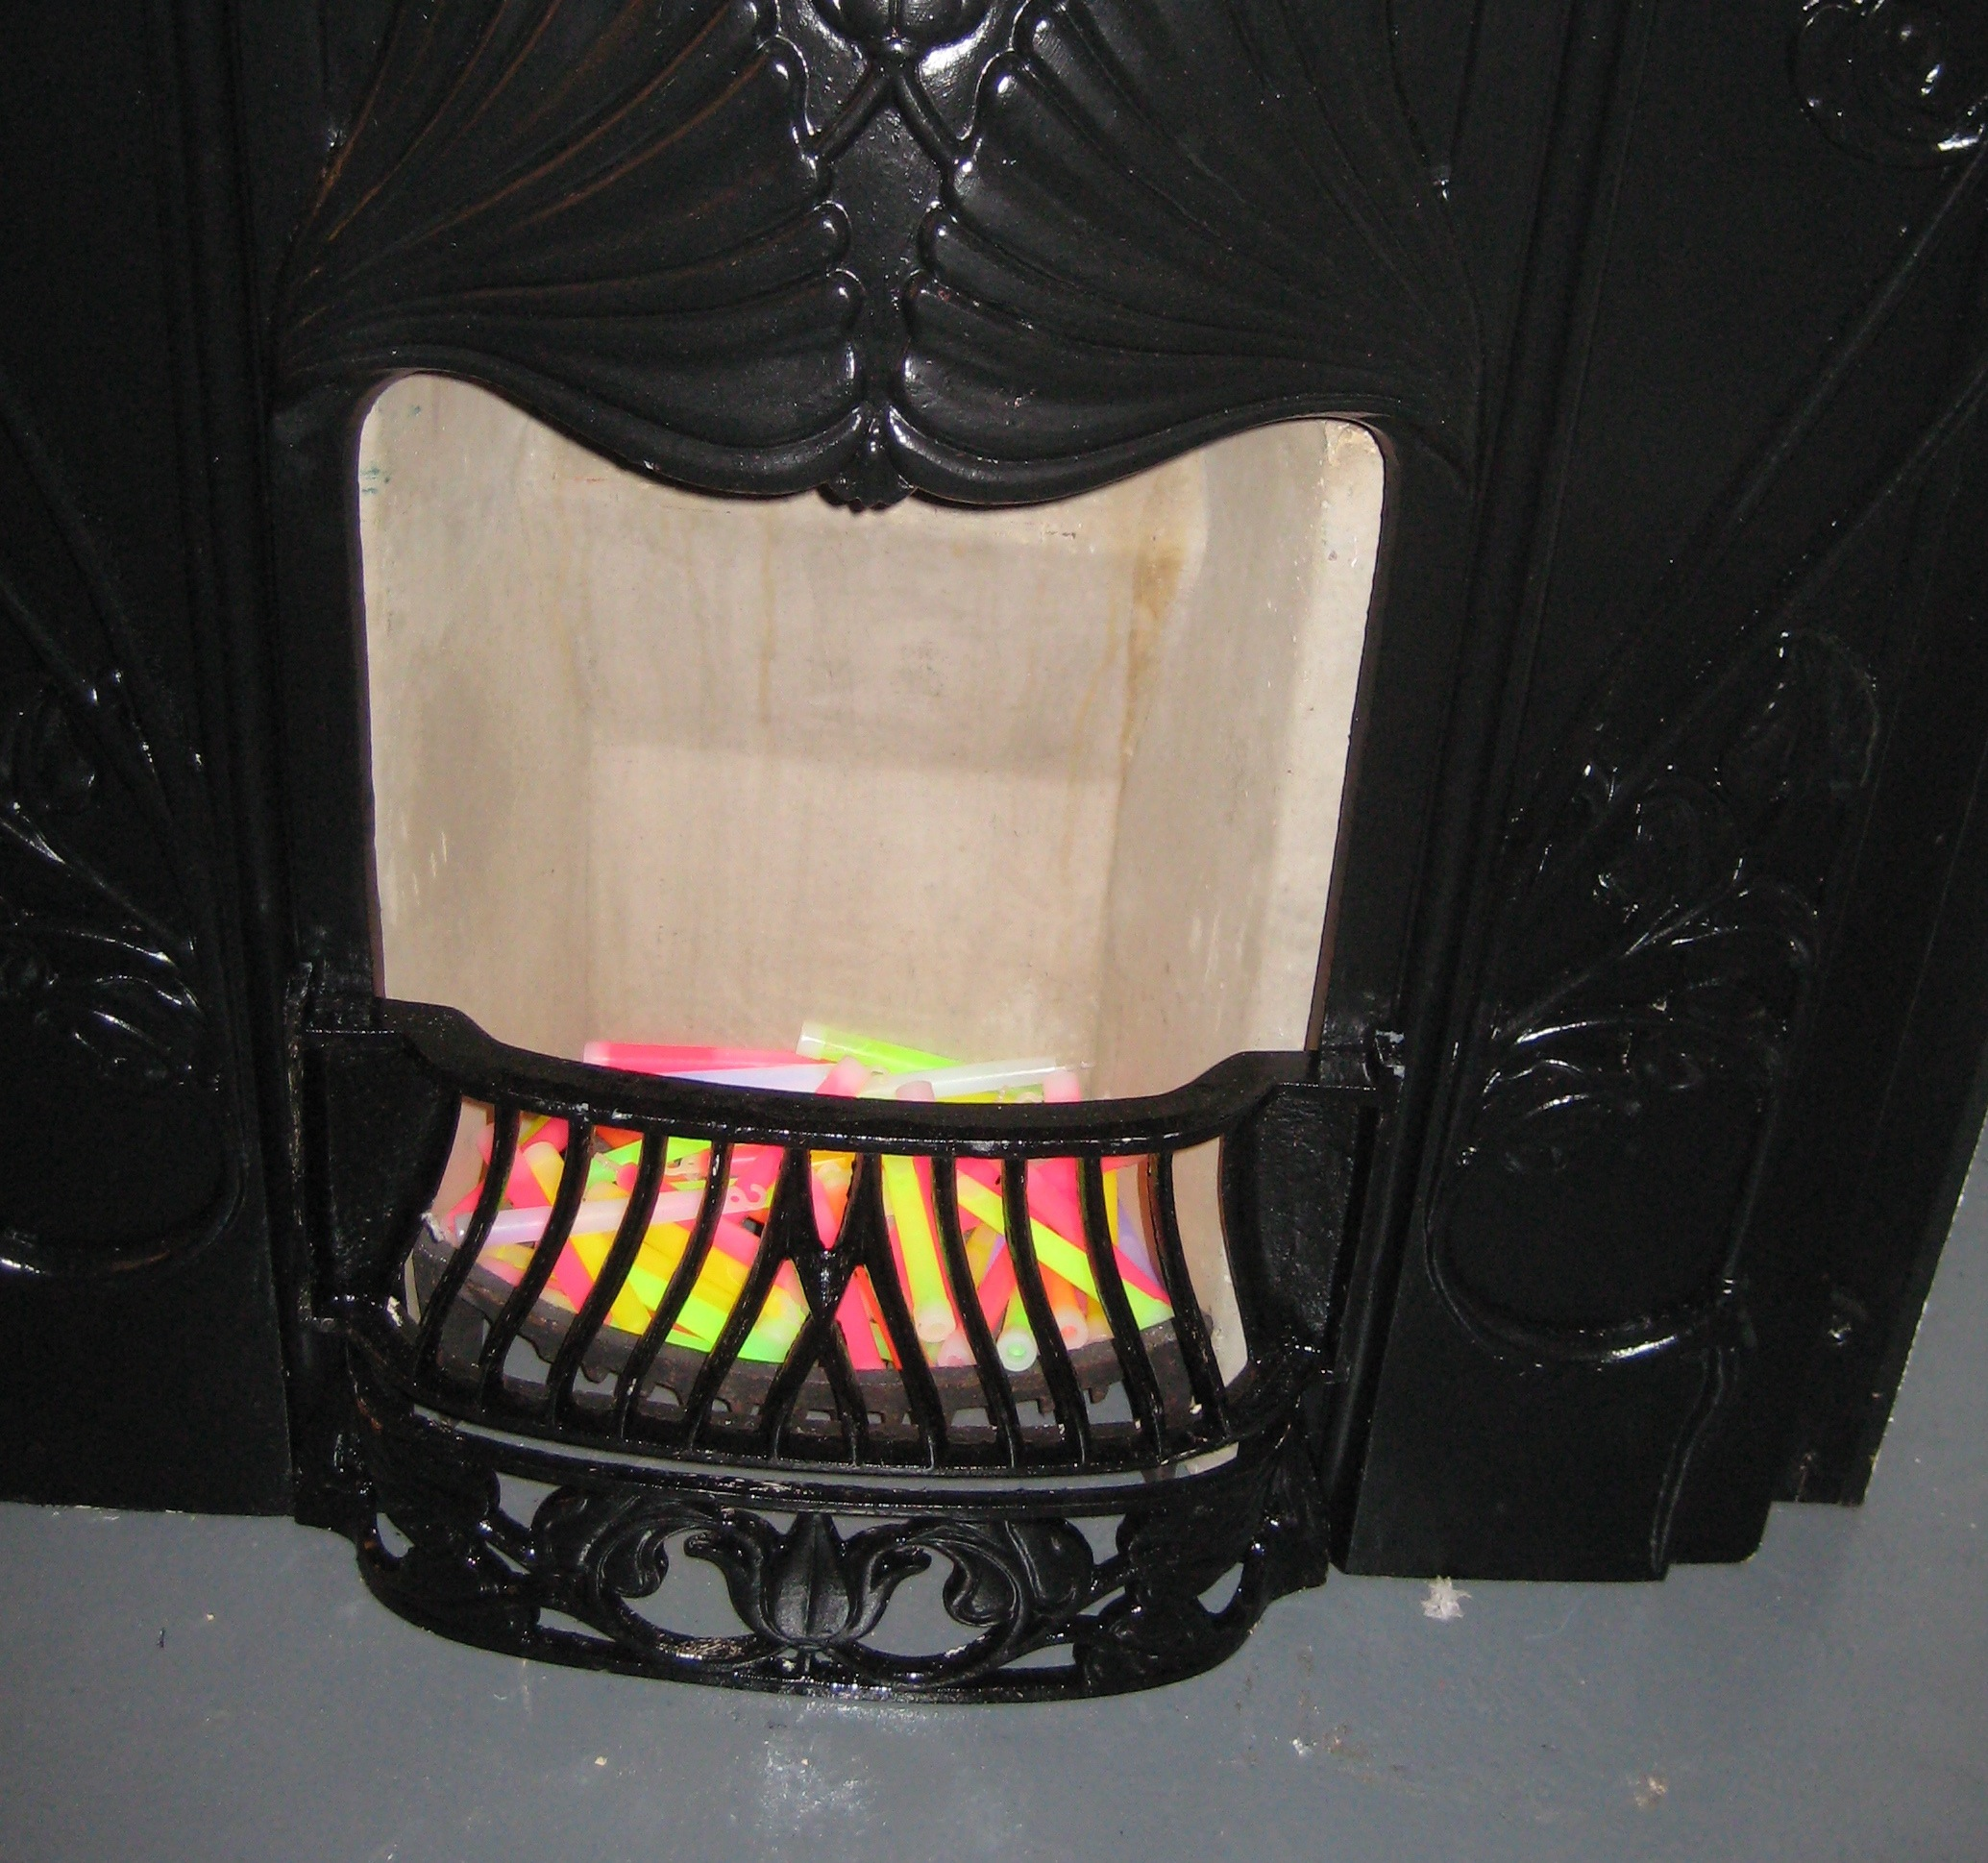 [The counter has a fireplace in it! And more glow sticks last night!